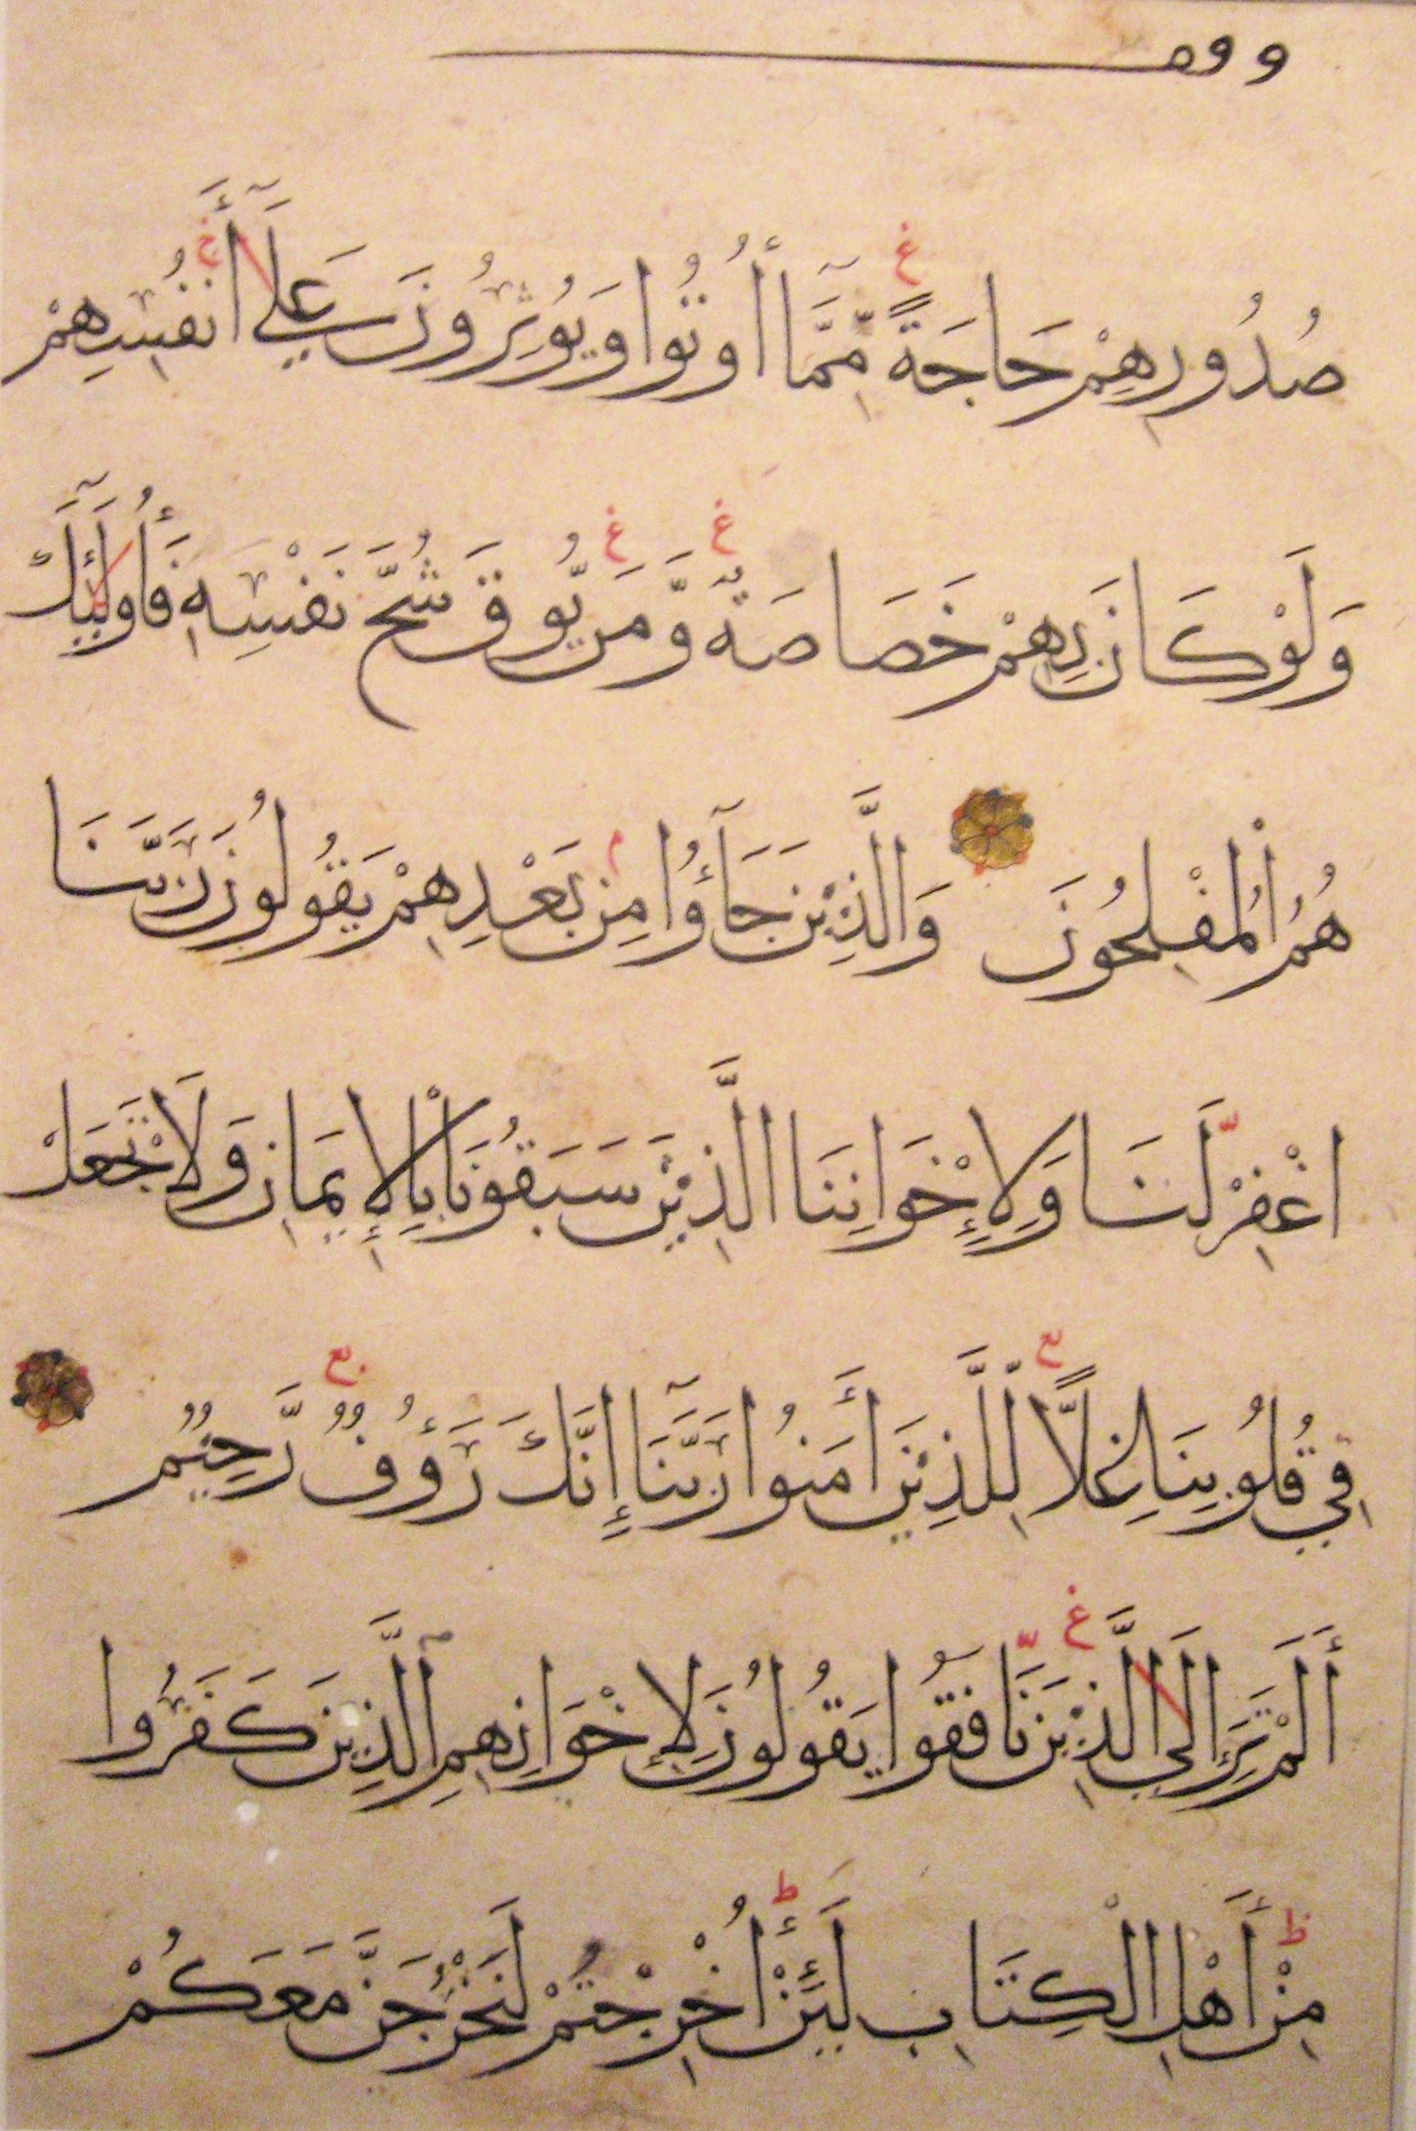 File:WLA lacma Egyptian Quran page 1438-1453 A.jpg